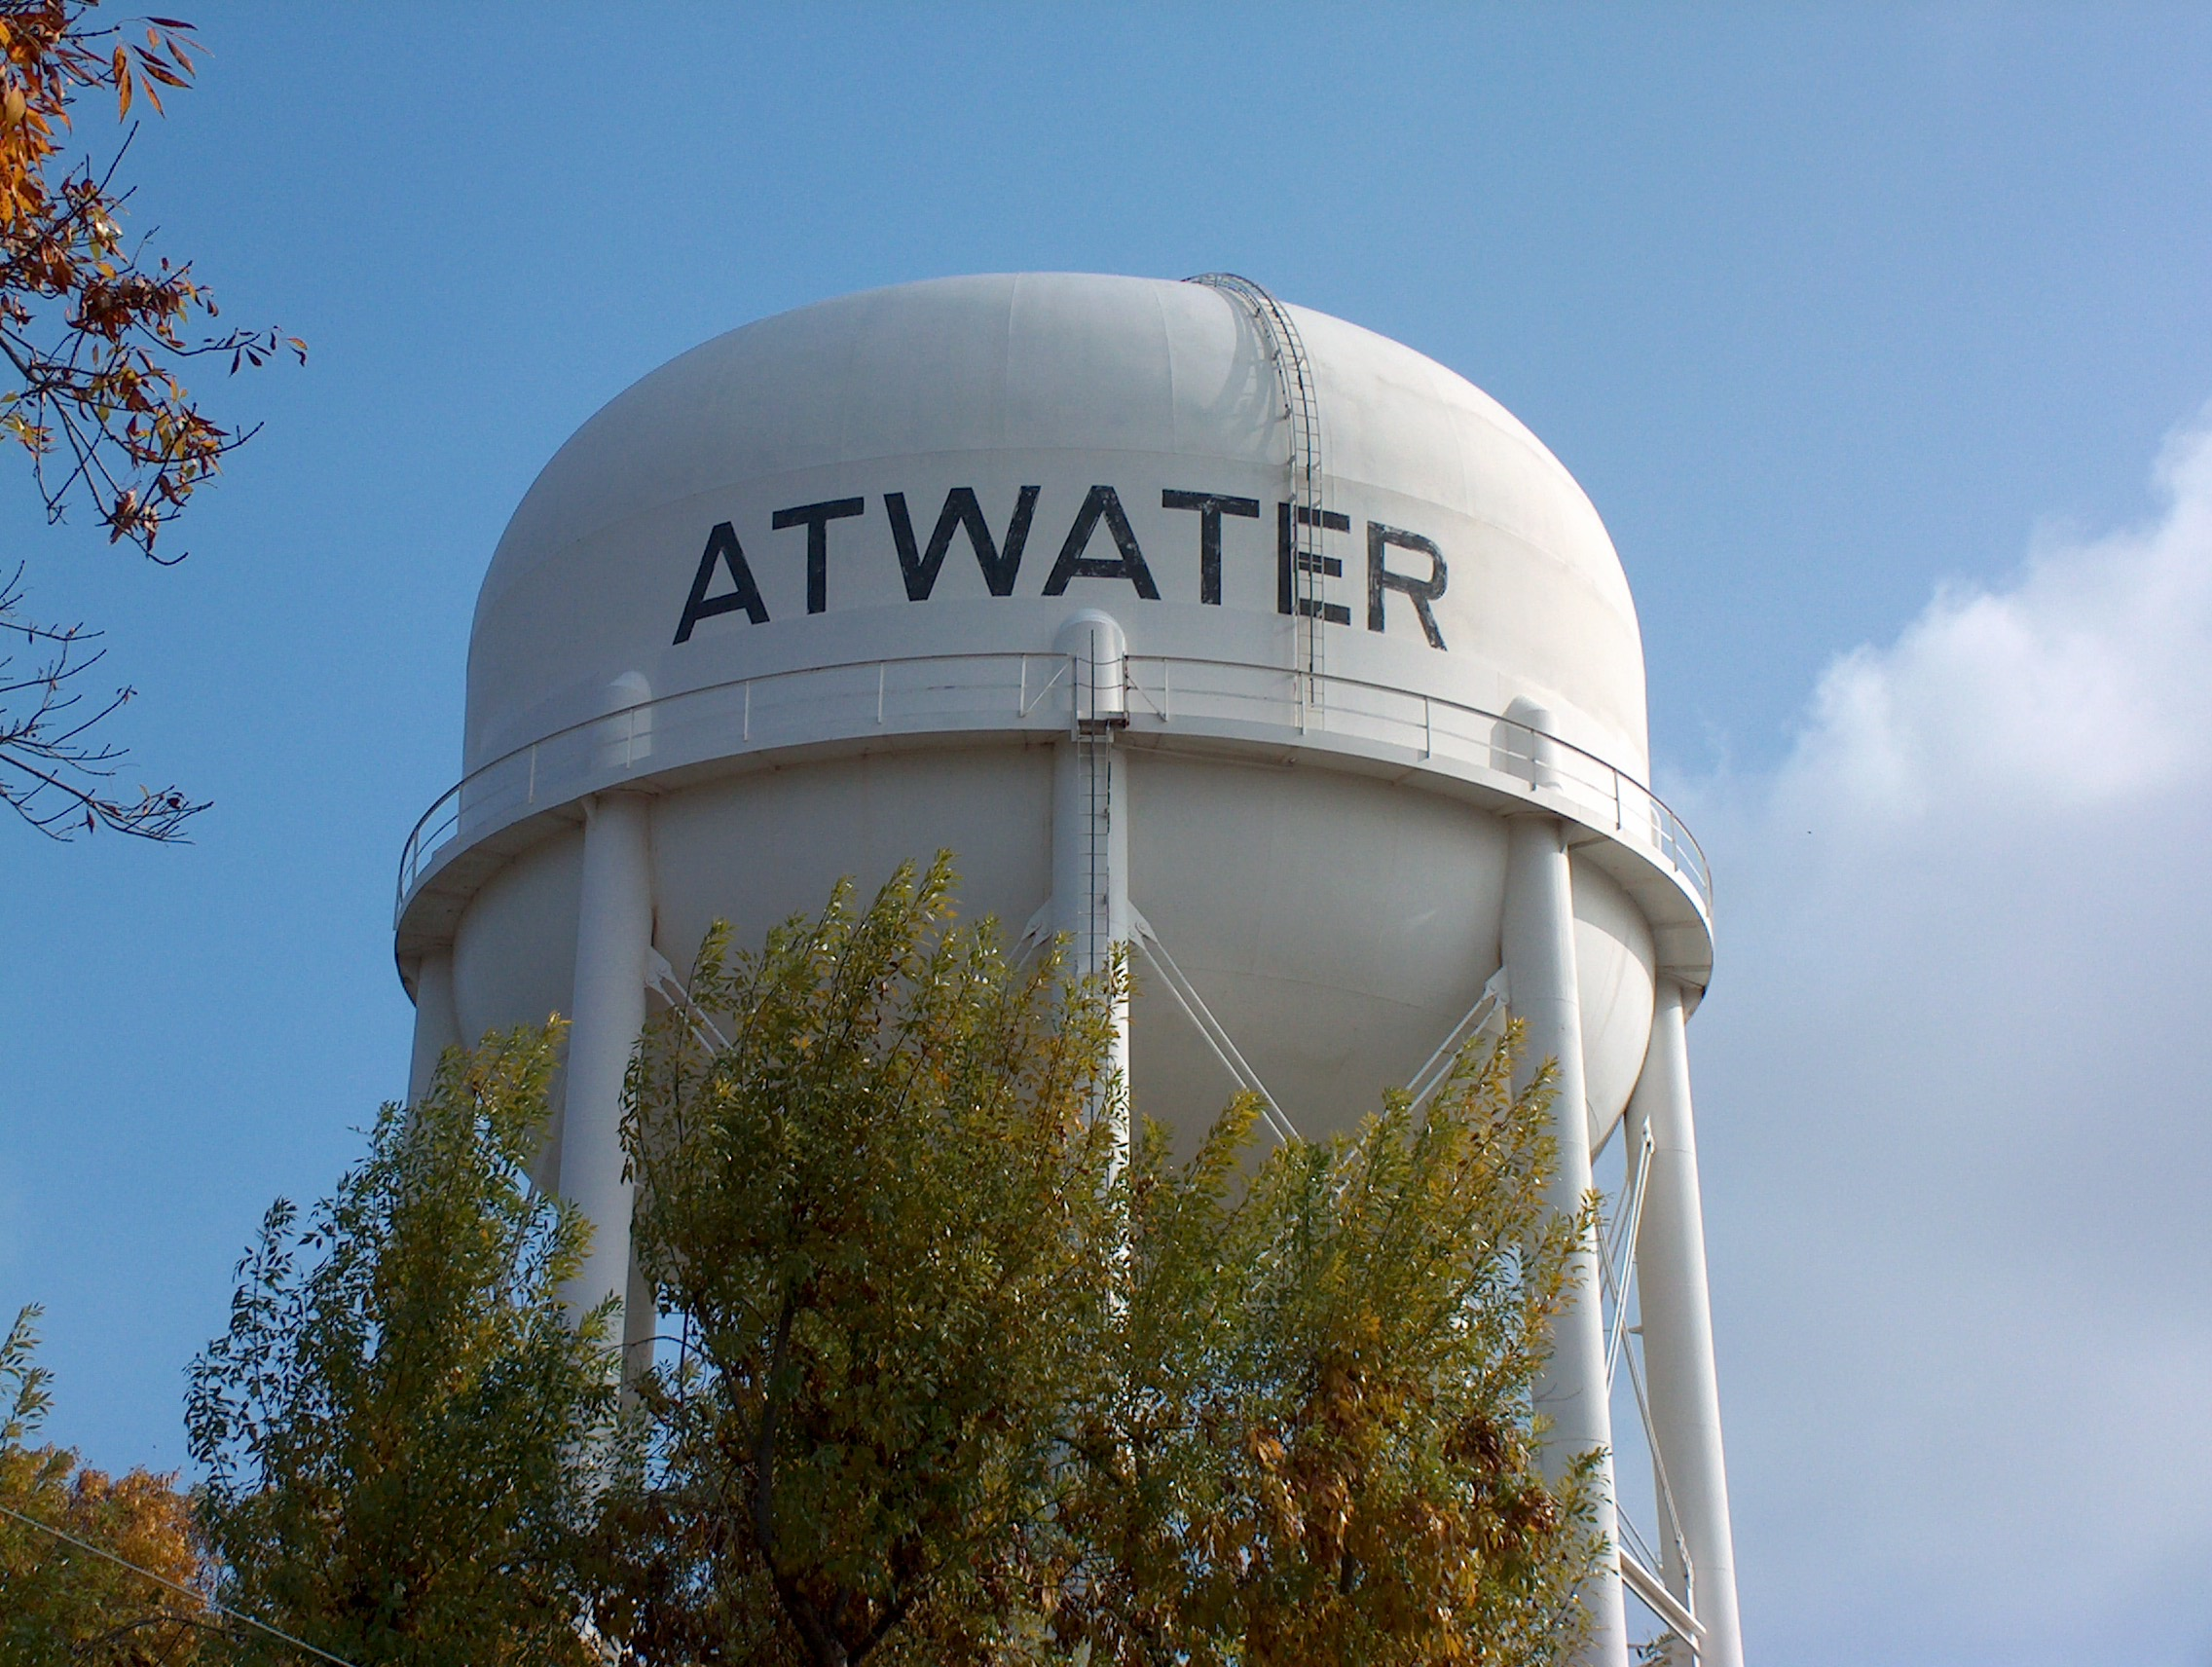 water tower in atwater